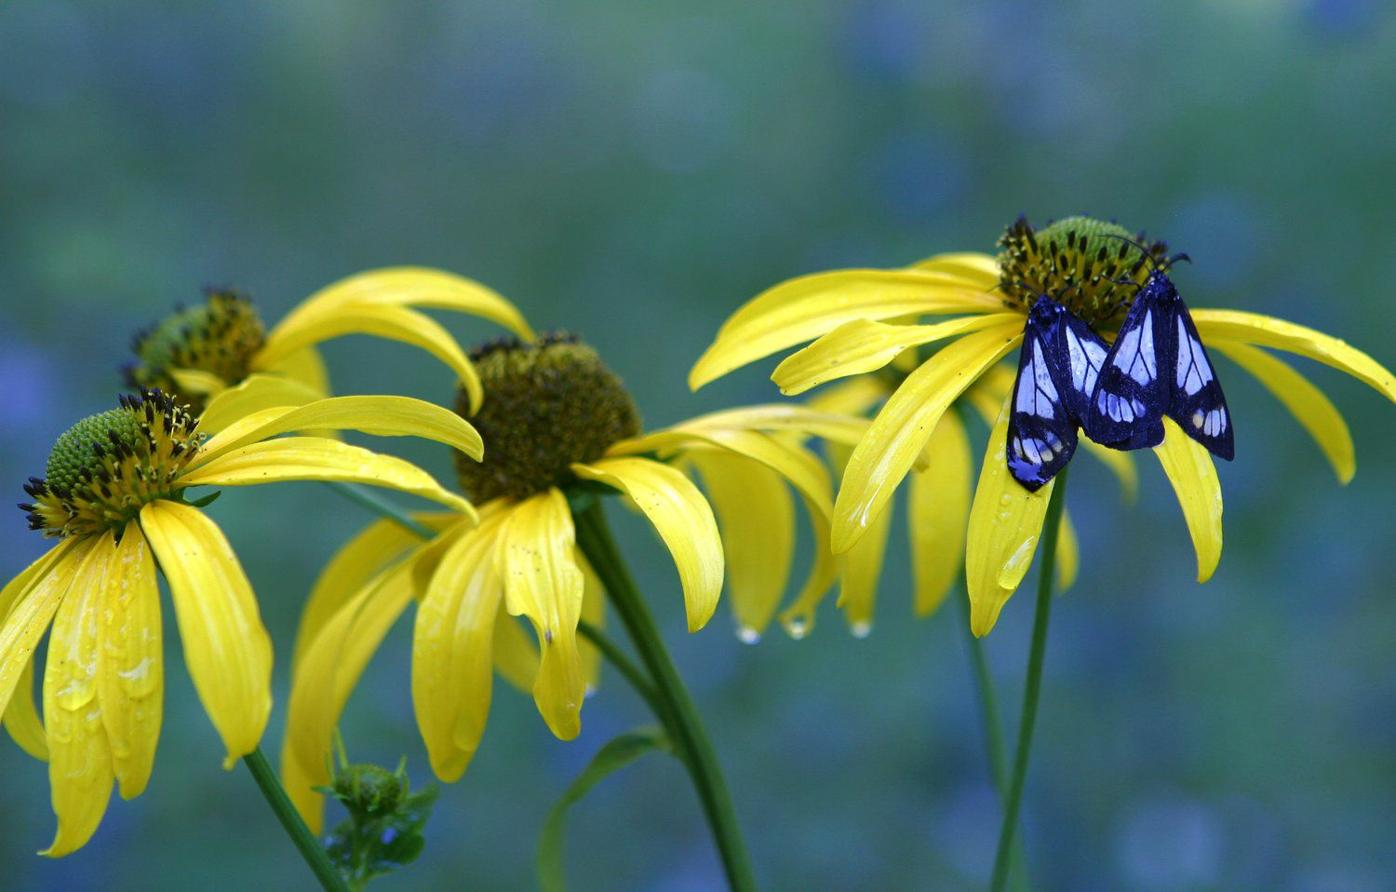 'Snap That Plant' contest produces winning photos